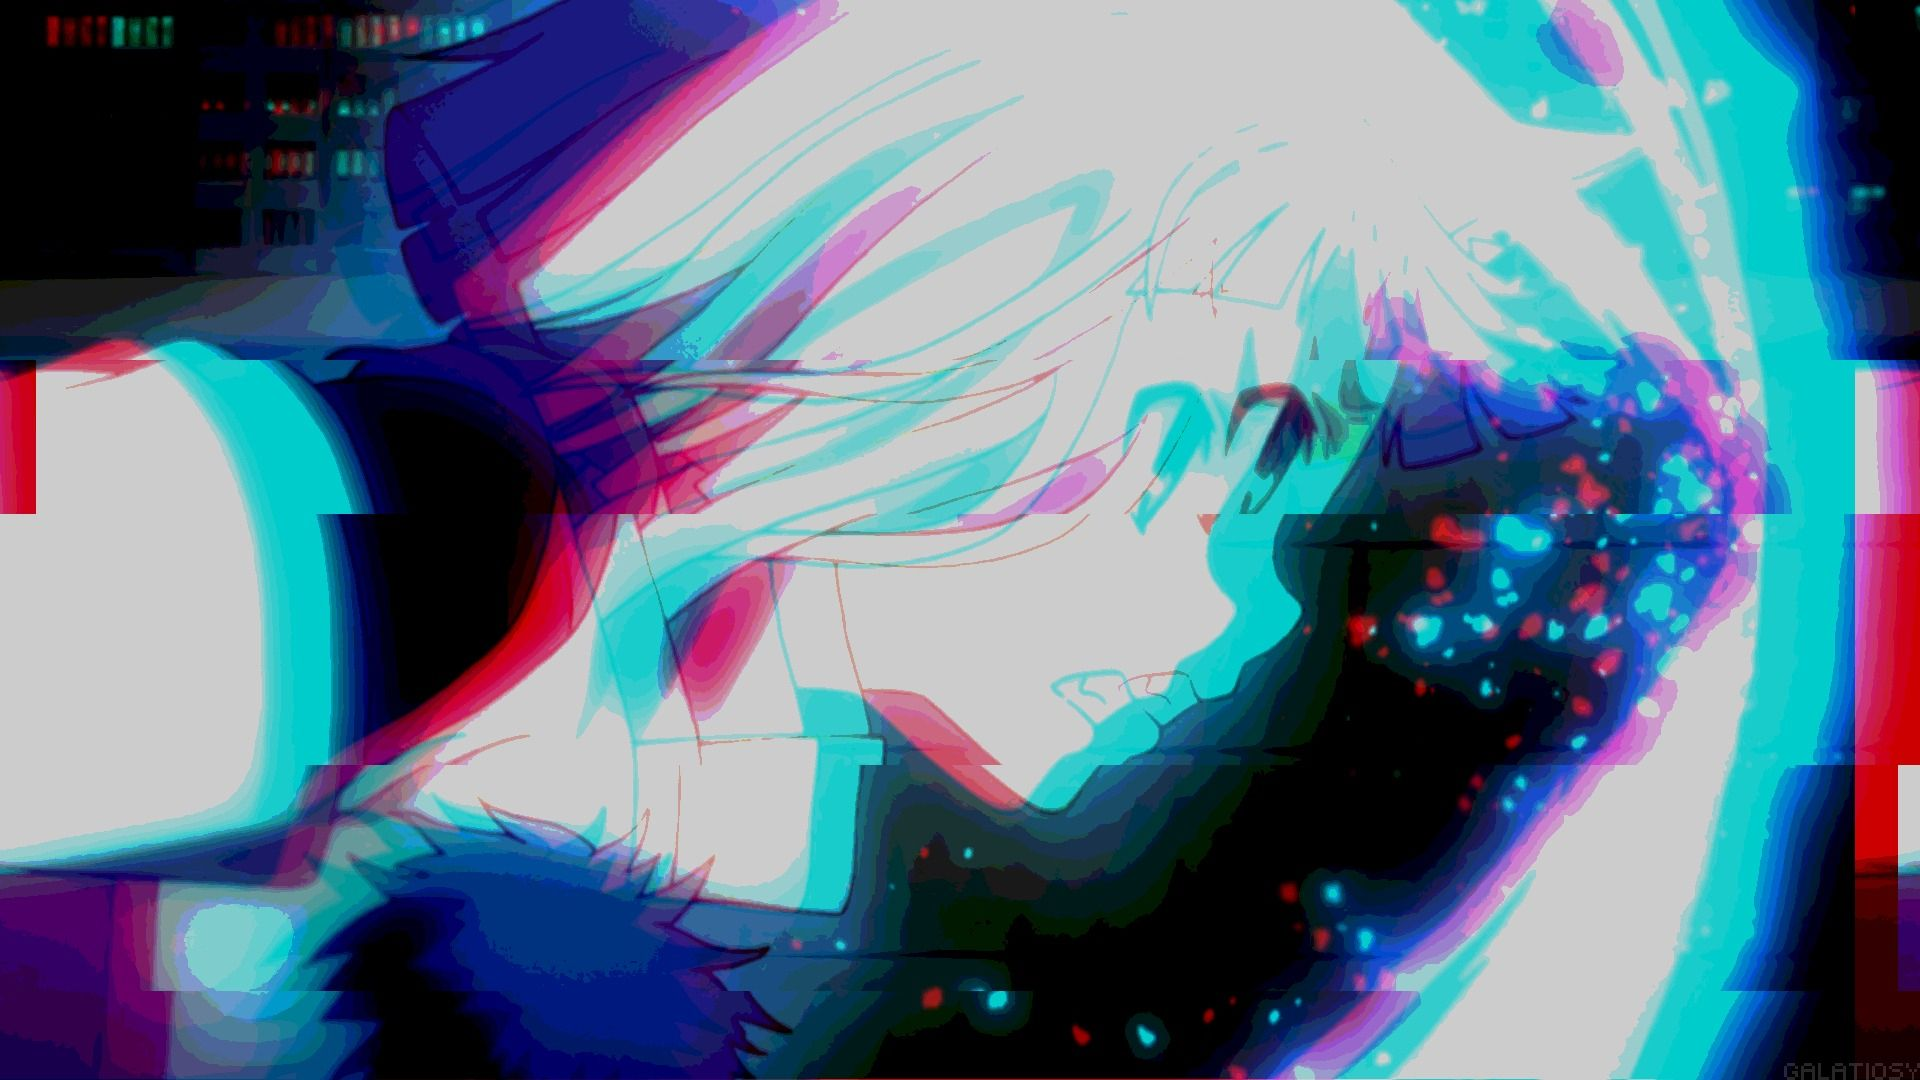 Anime Glitch Wallpapers Top Free Anime Glitch Backgrounds